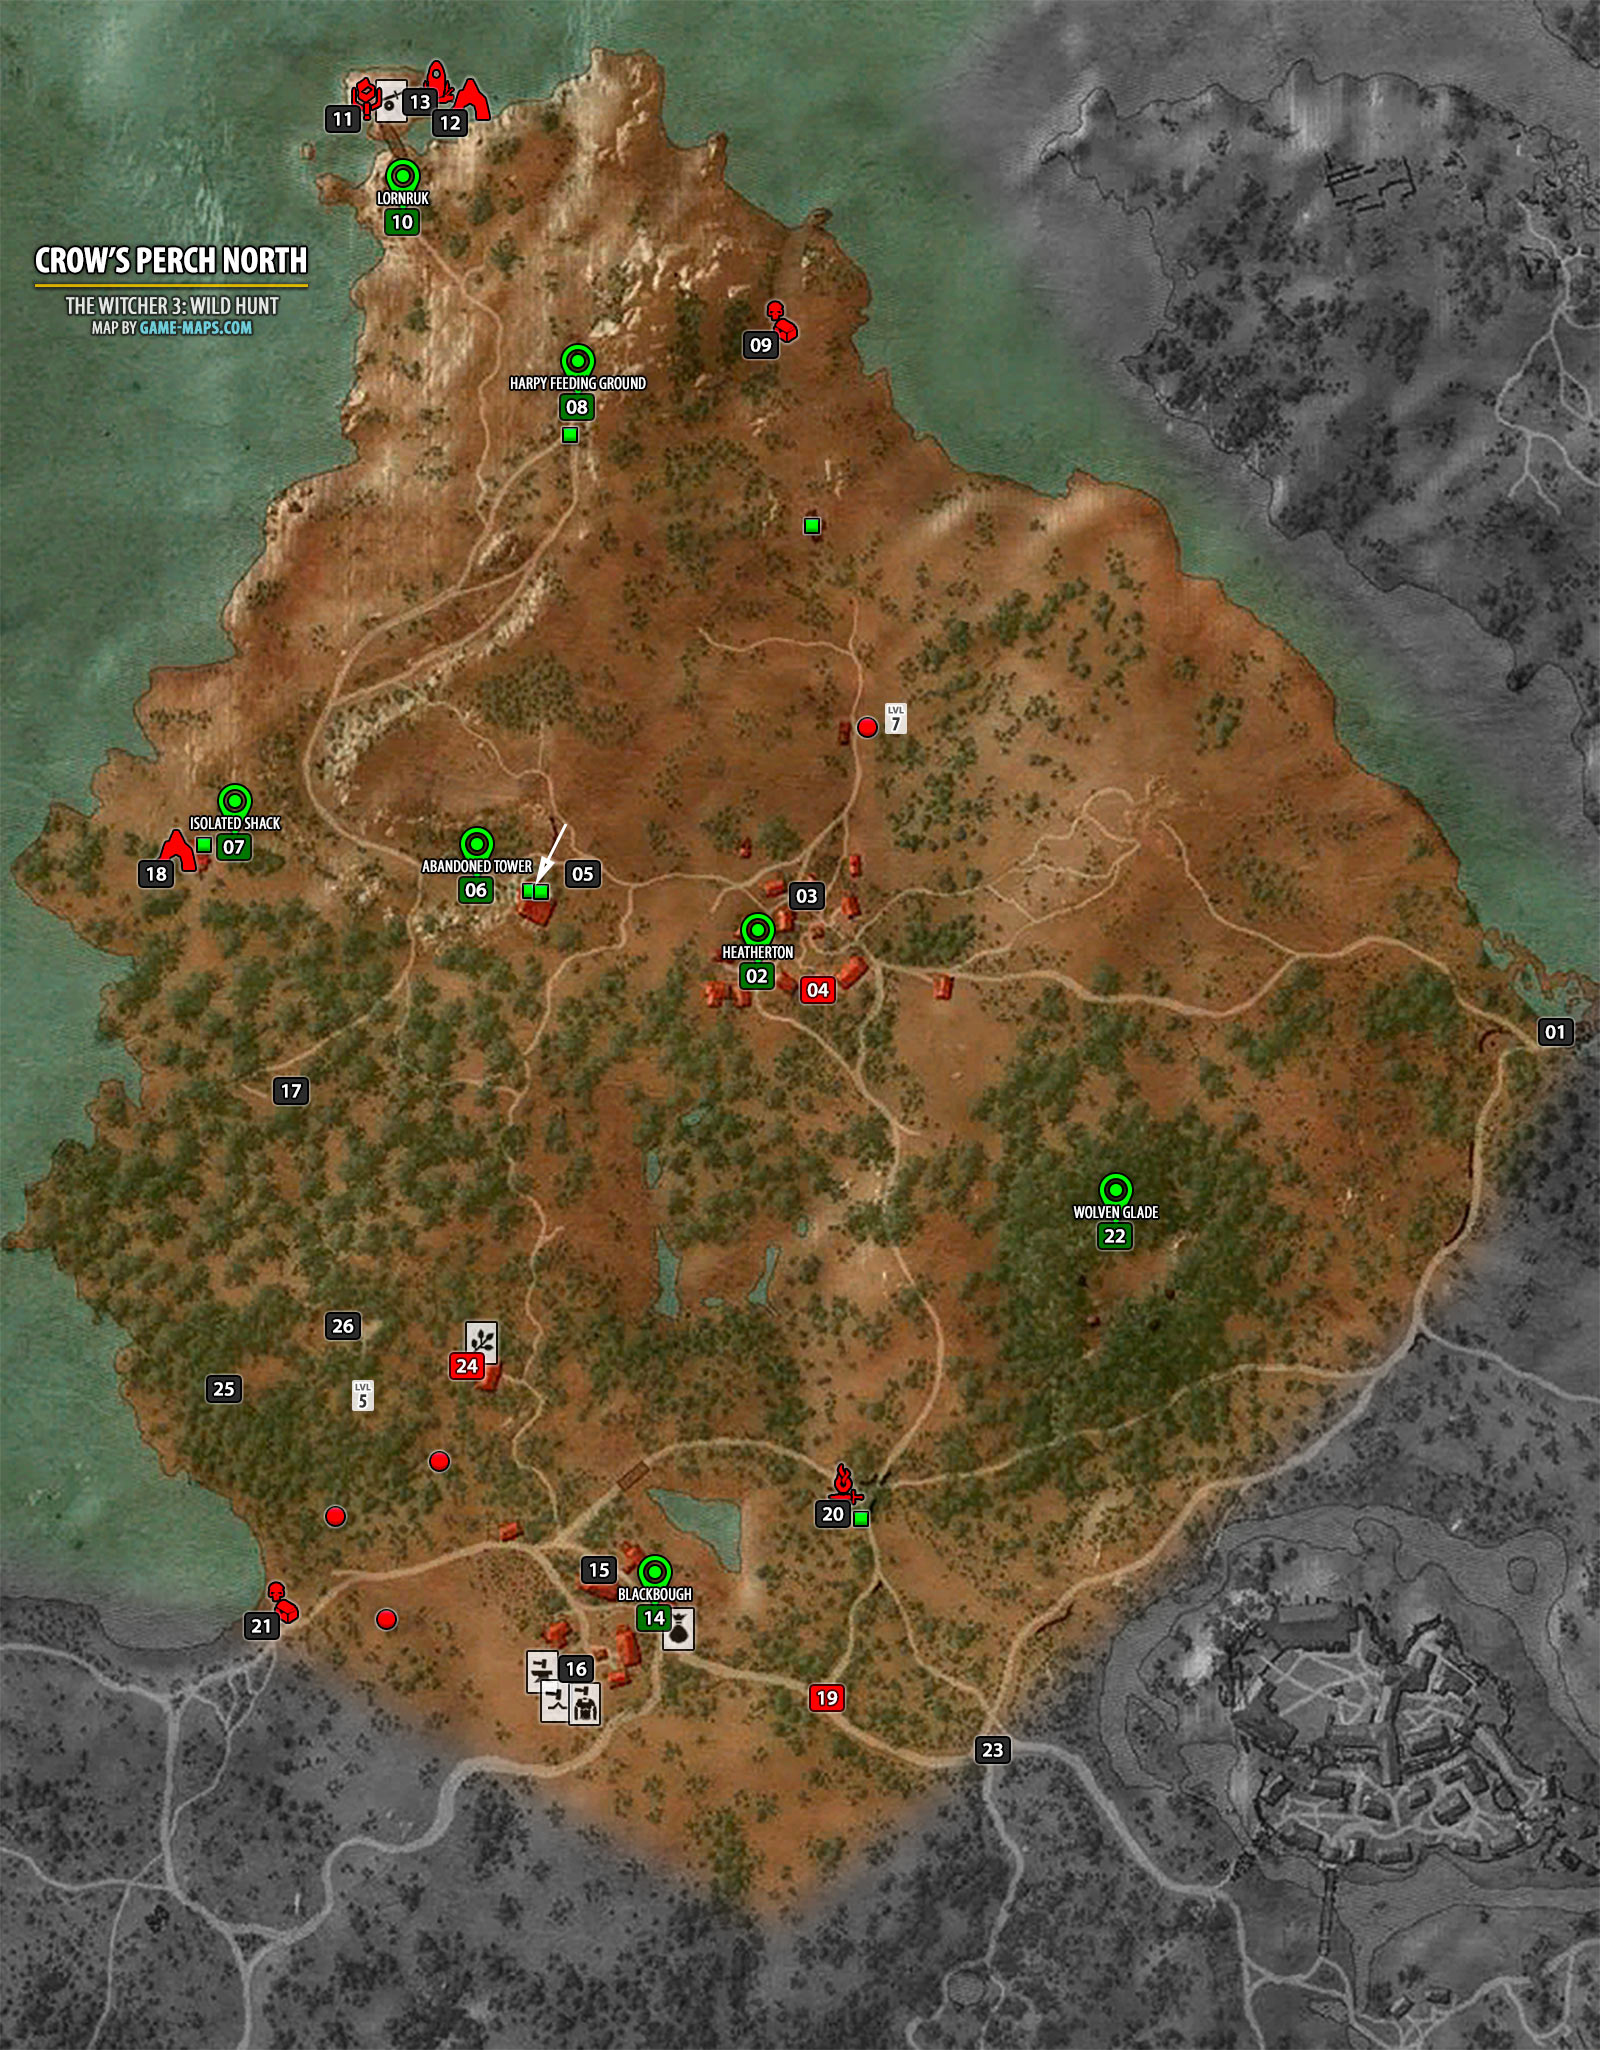 Crow's Perch North Map - The Witcher 3 | game-maps.com on witcher 3 armor sets, witcher 3 all maps, the witcher map detailed, witcher 3 cave of ruins,